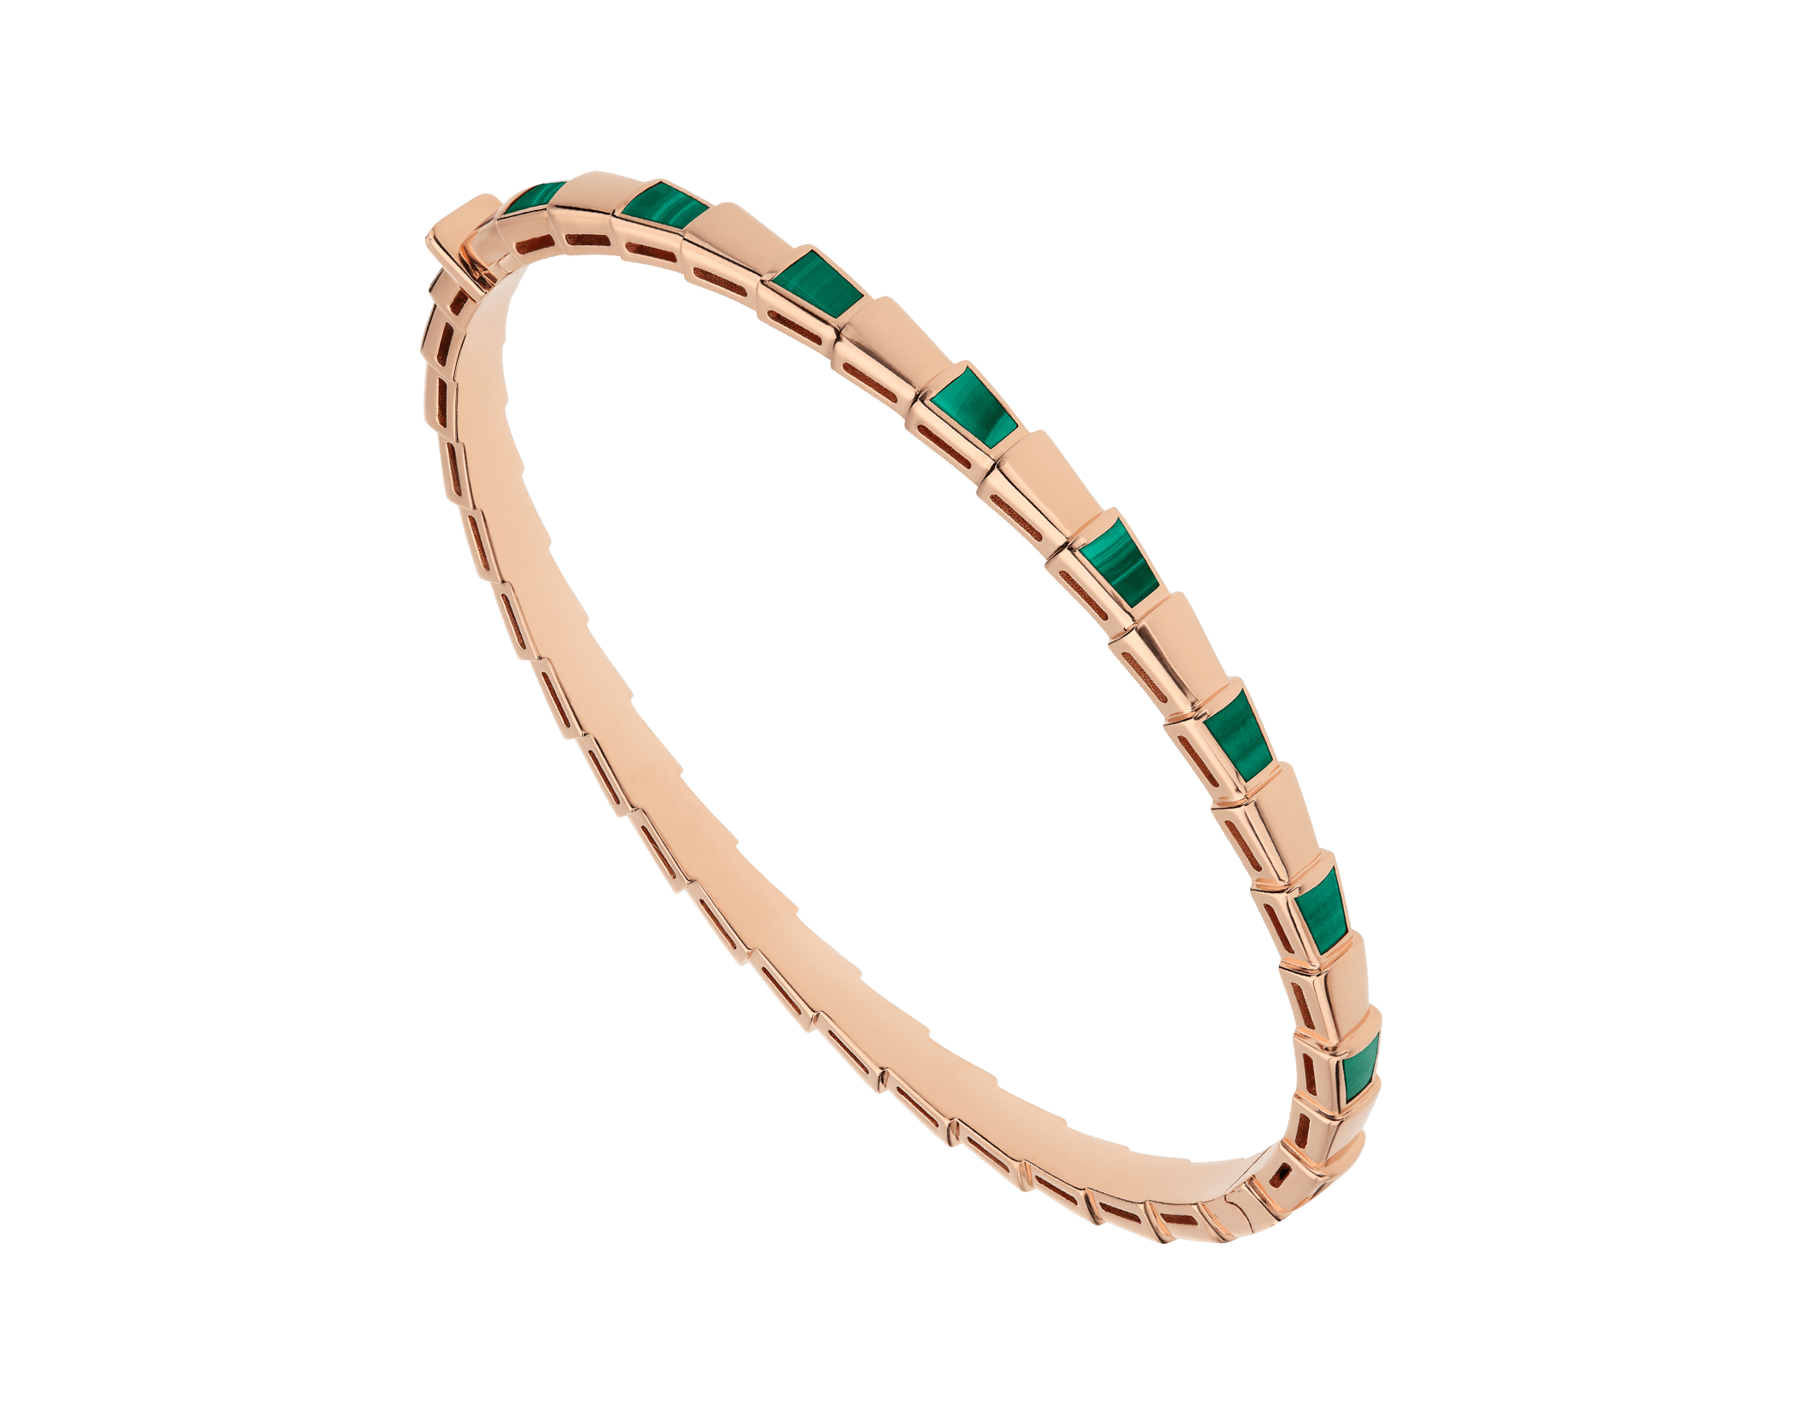 Serpenti 18 kt rose gold thin bangle bracelet set with malachite elements BR858709 image 1